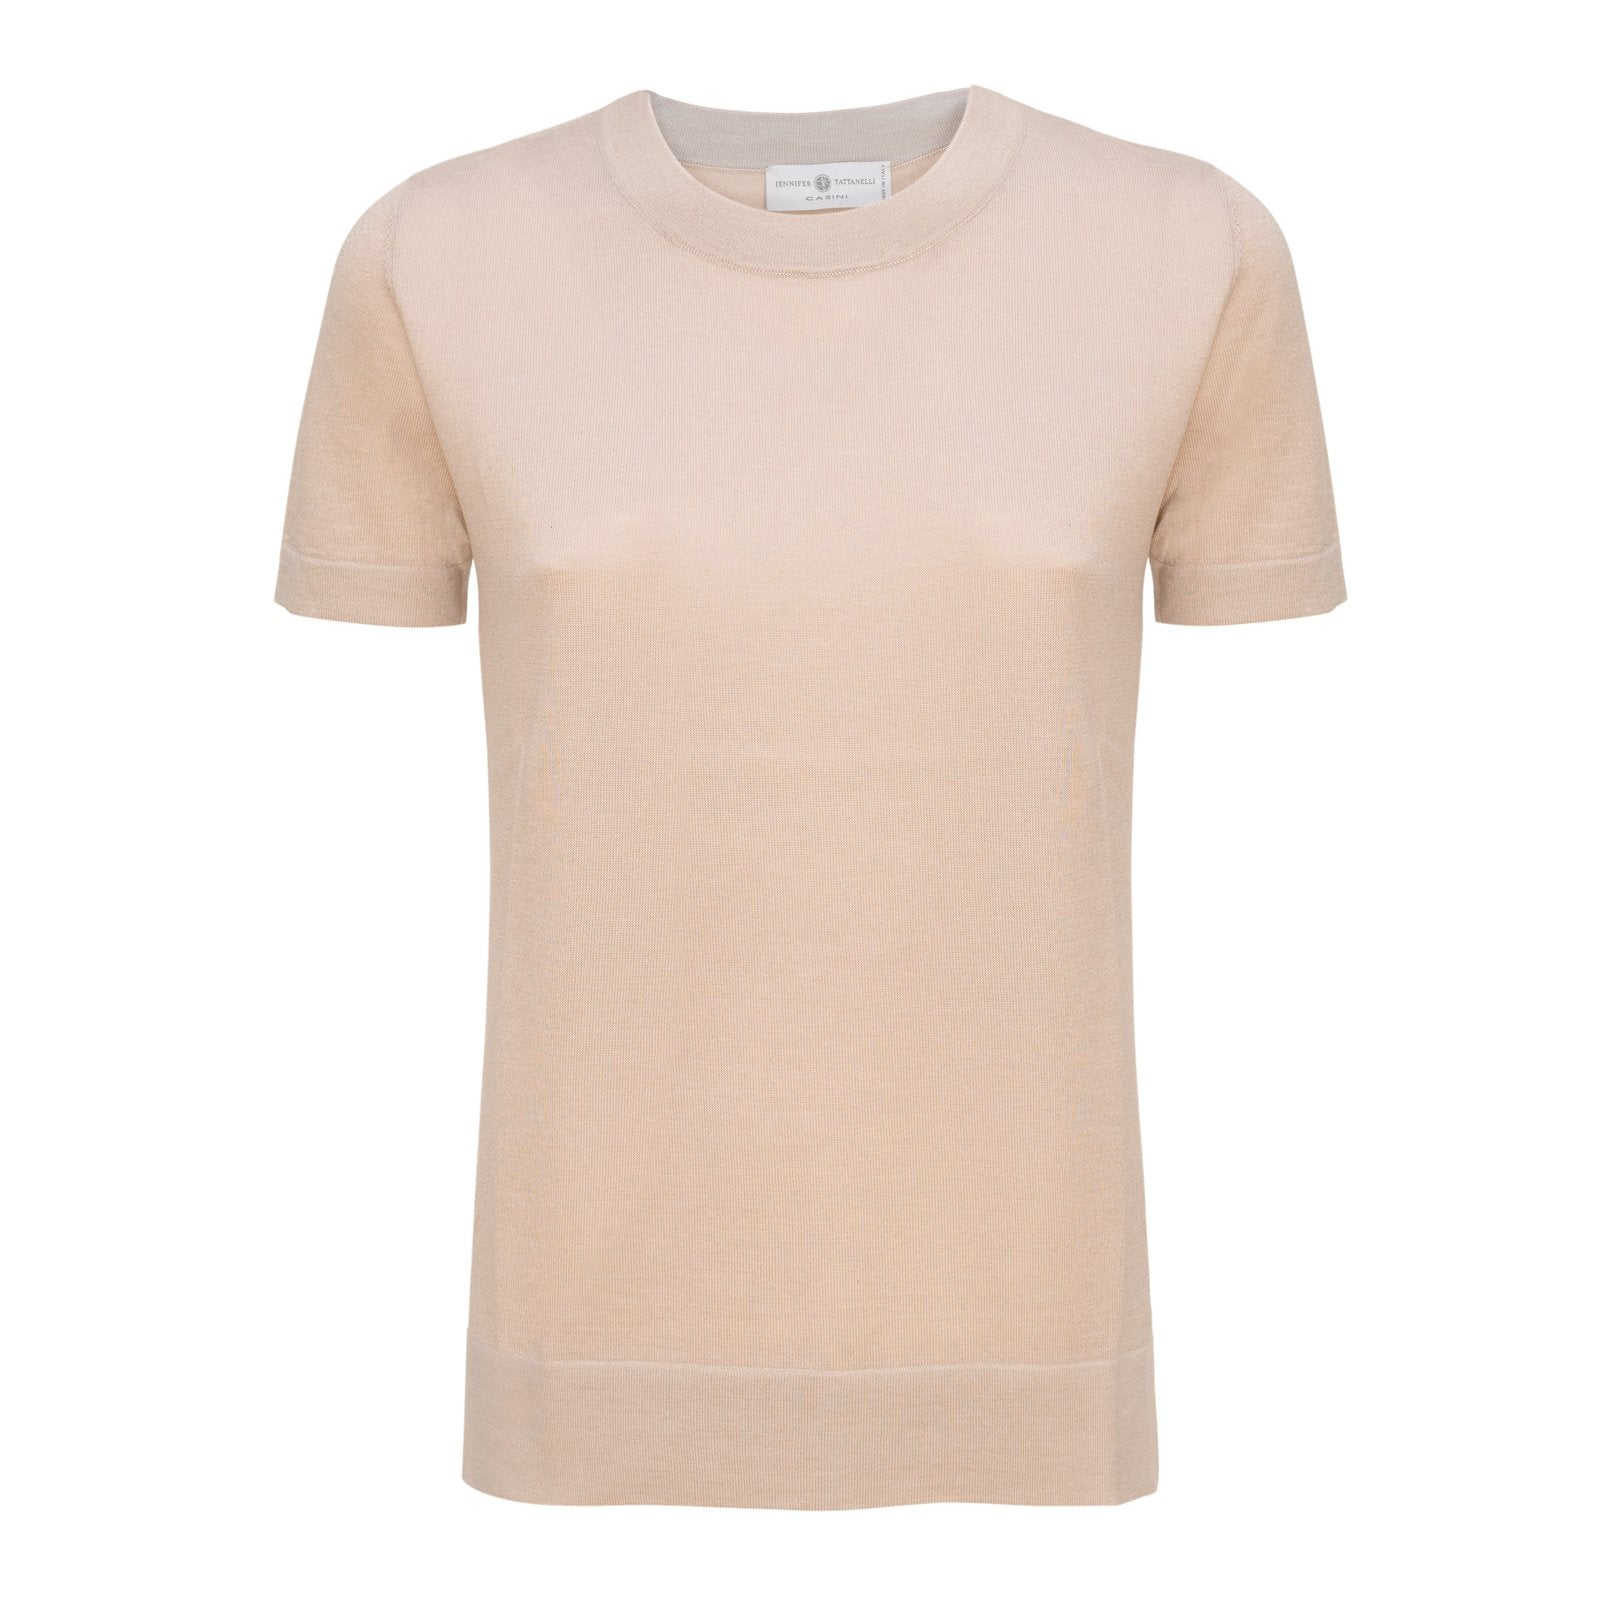 Women Cashmere Knitwear T-Shirt in Tortora - Jennifer Tattanelli